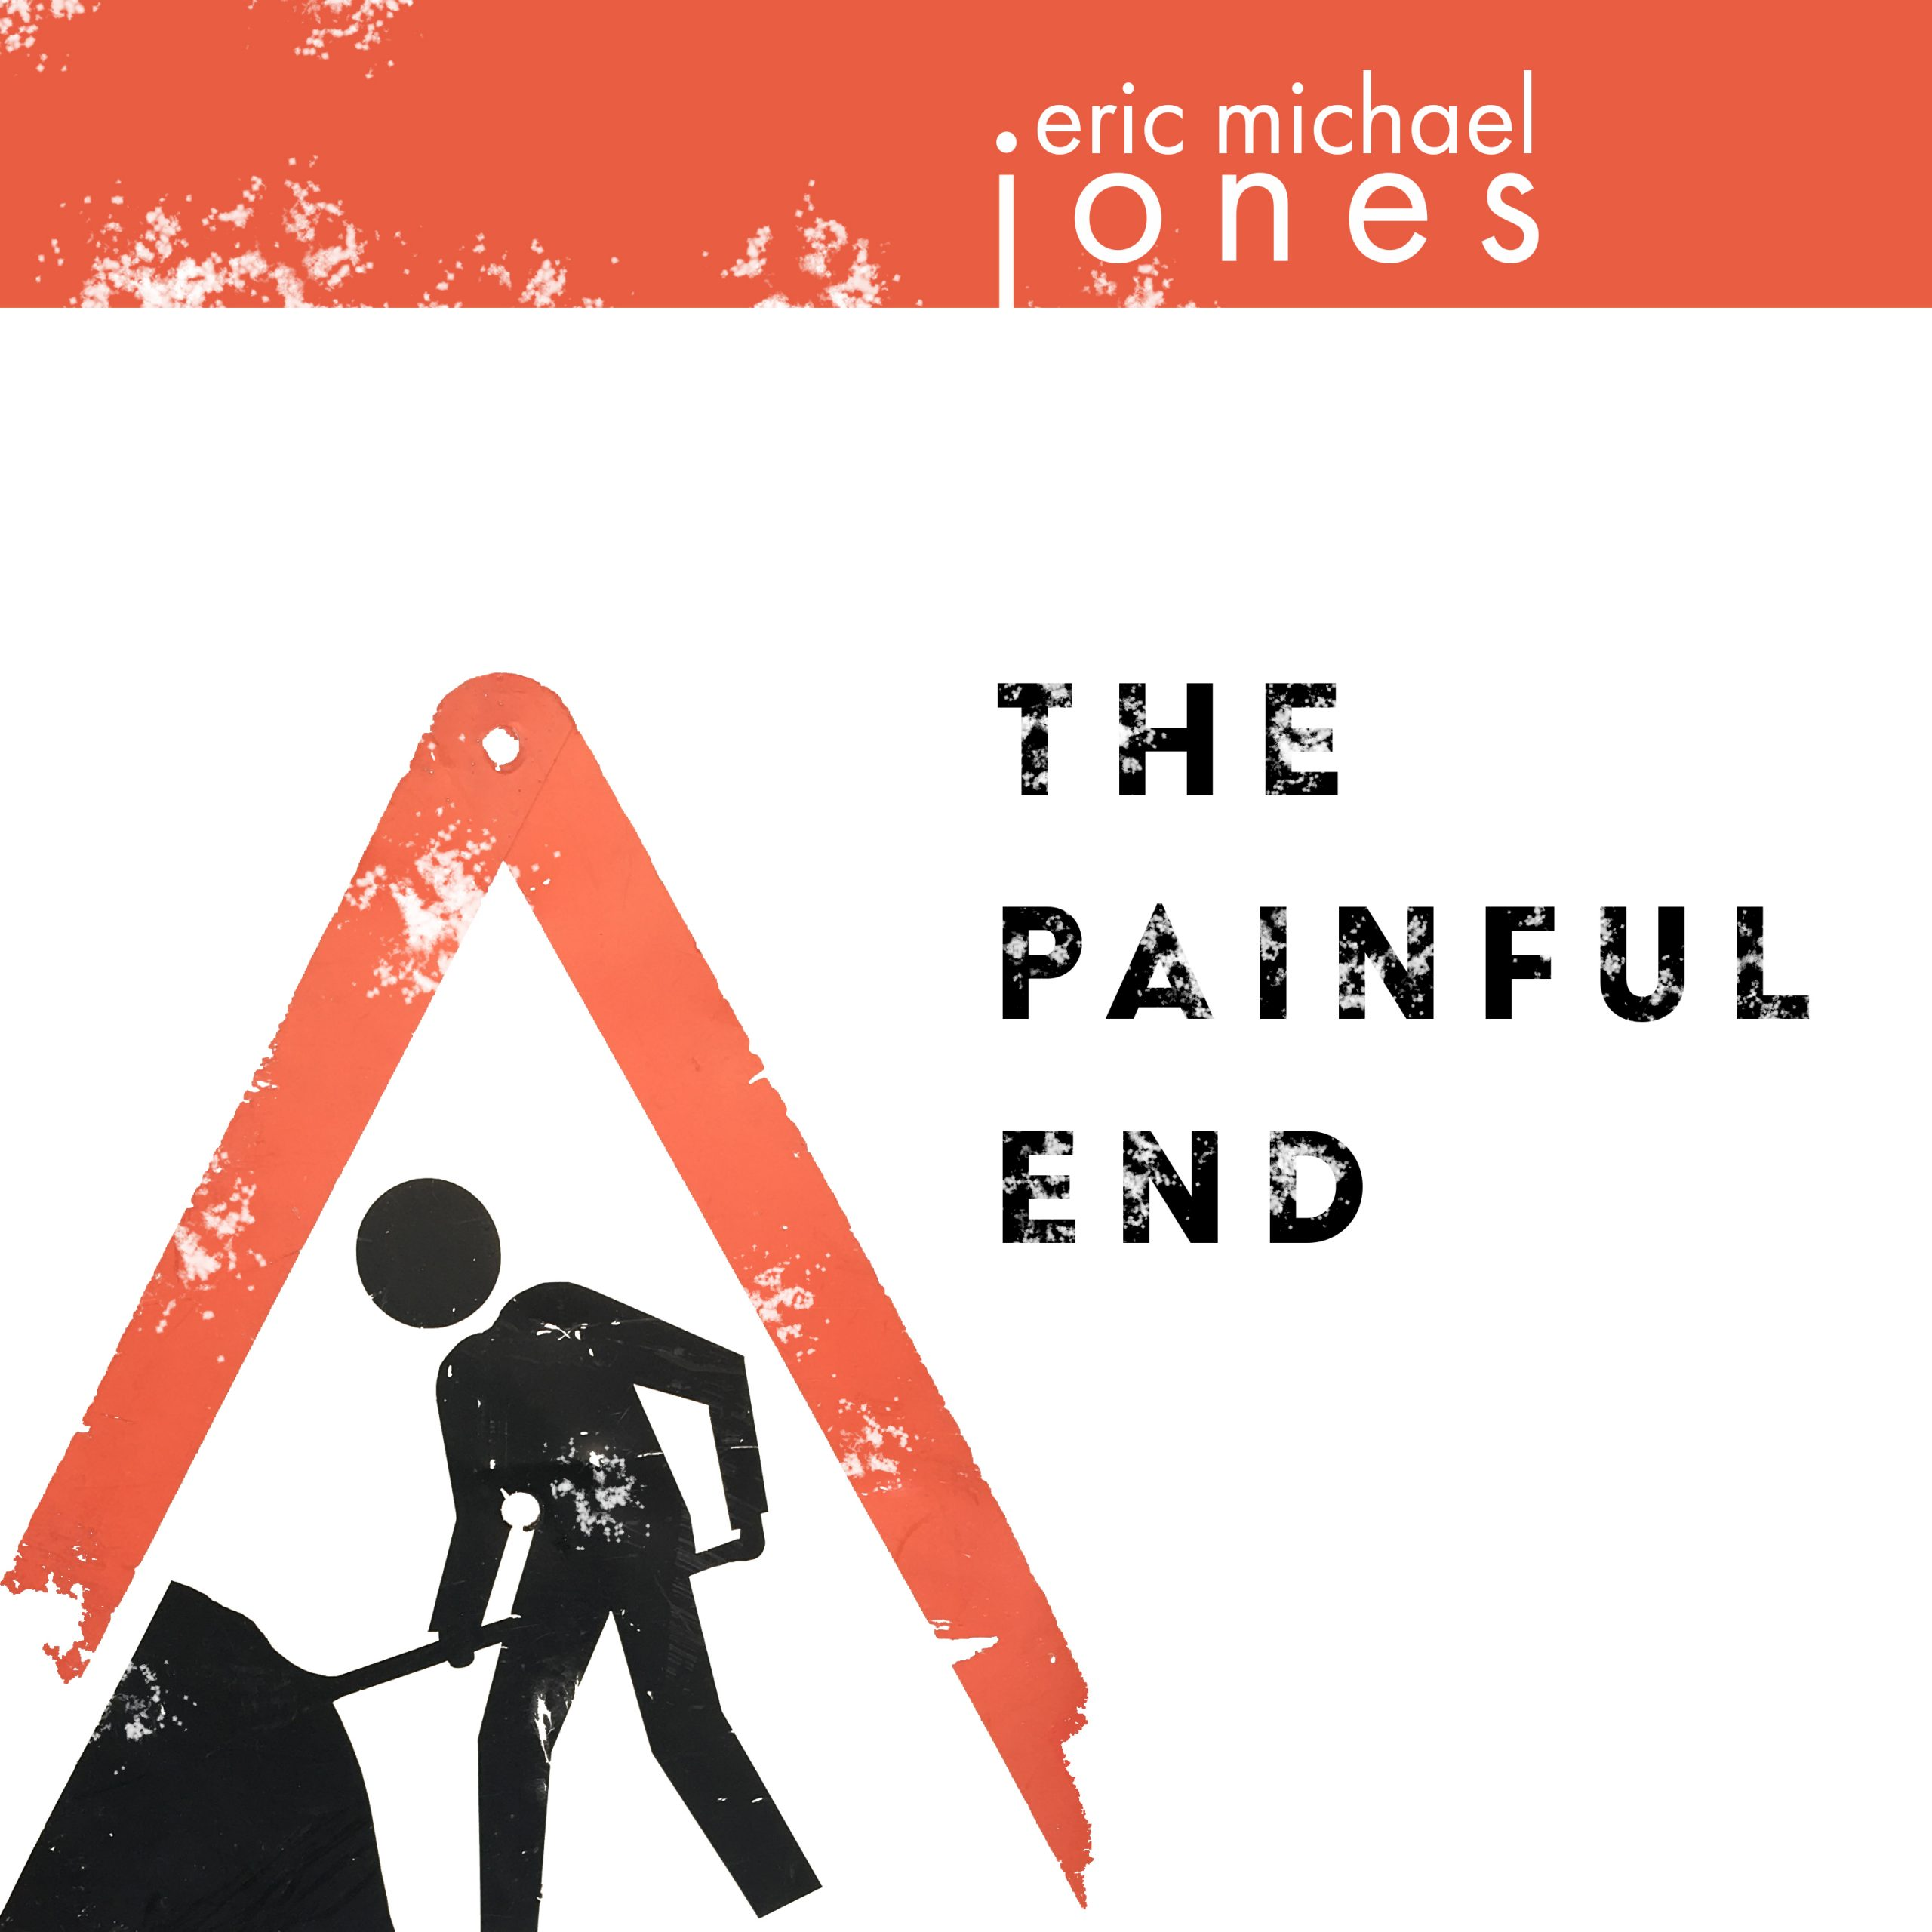 Cover art for The Painful End, showing a graphic road sign of a man shoveling dirt